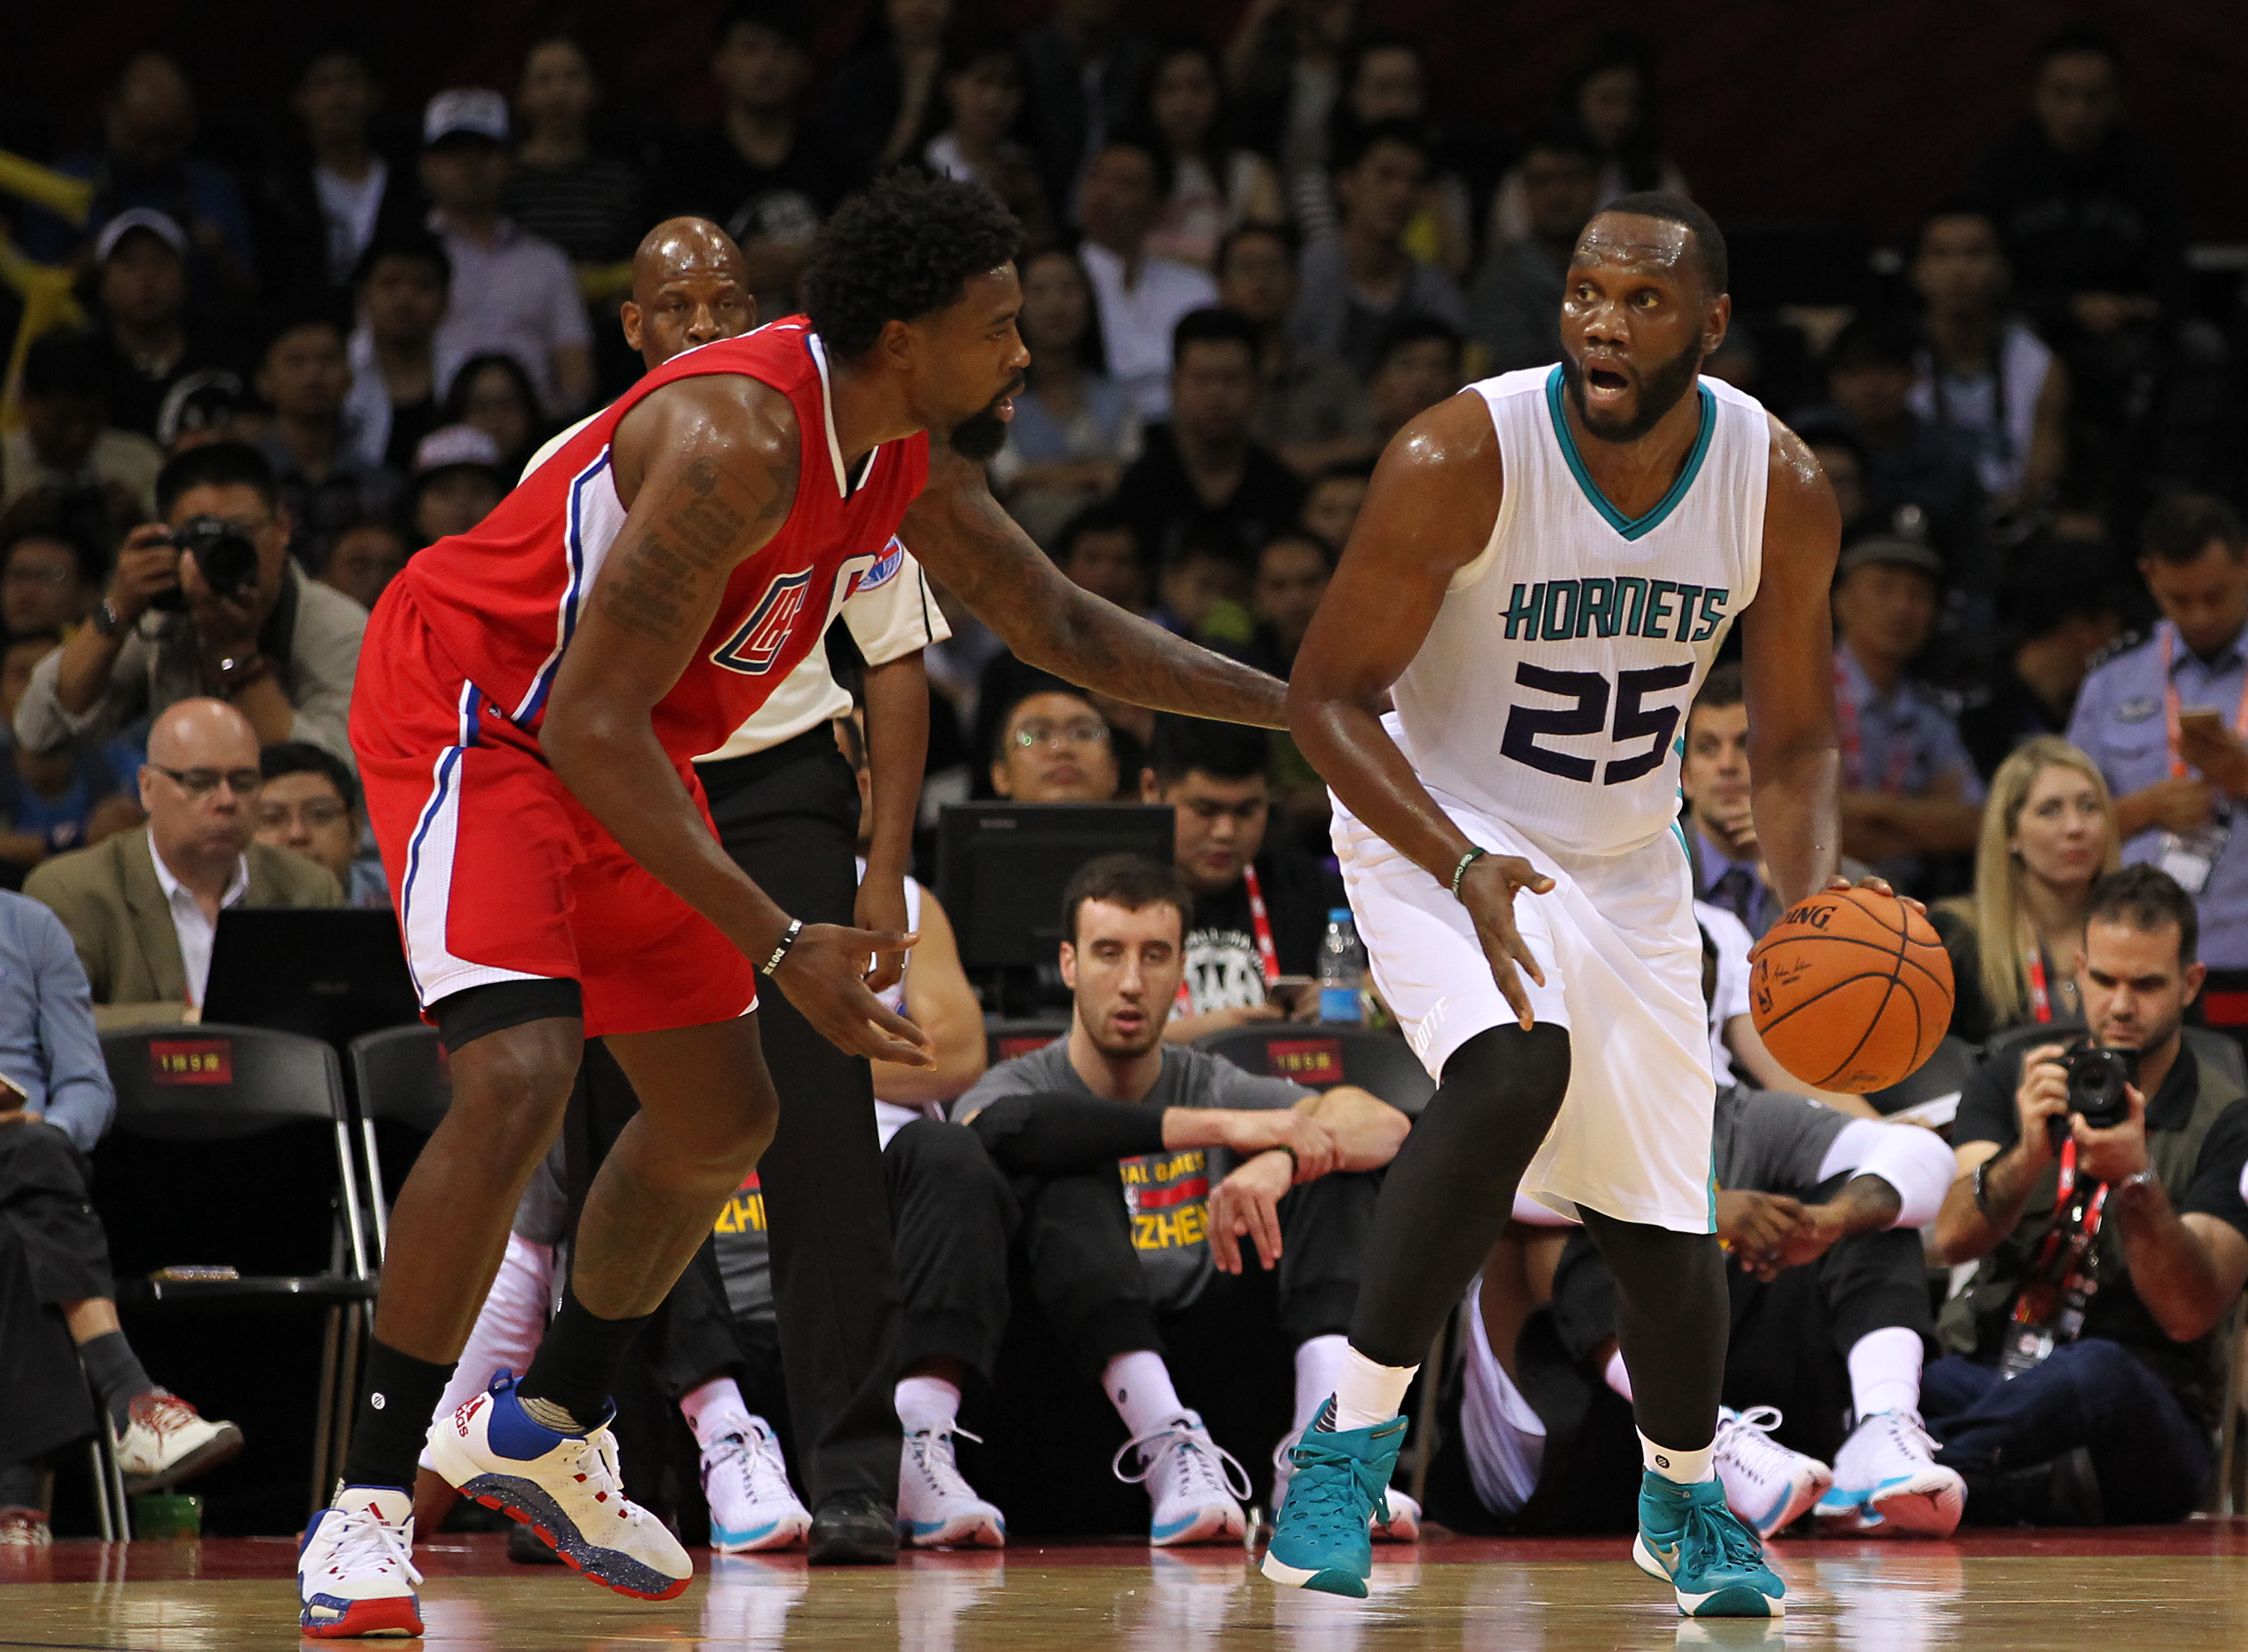 SHENZHEN, CHINA - OCTOBER 11: Al Jefferson #25 of Charlotte Hornets in action against Deandre Jordan #6 of Los Angeles Clippers during the match between Charlotte Hornets and Los Angeles Clippers  as part of the 2015 NBA Global Games China at Universiade